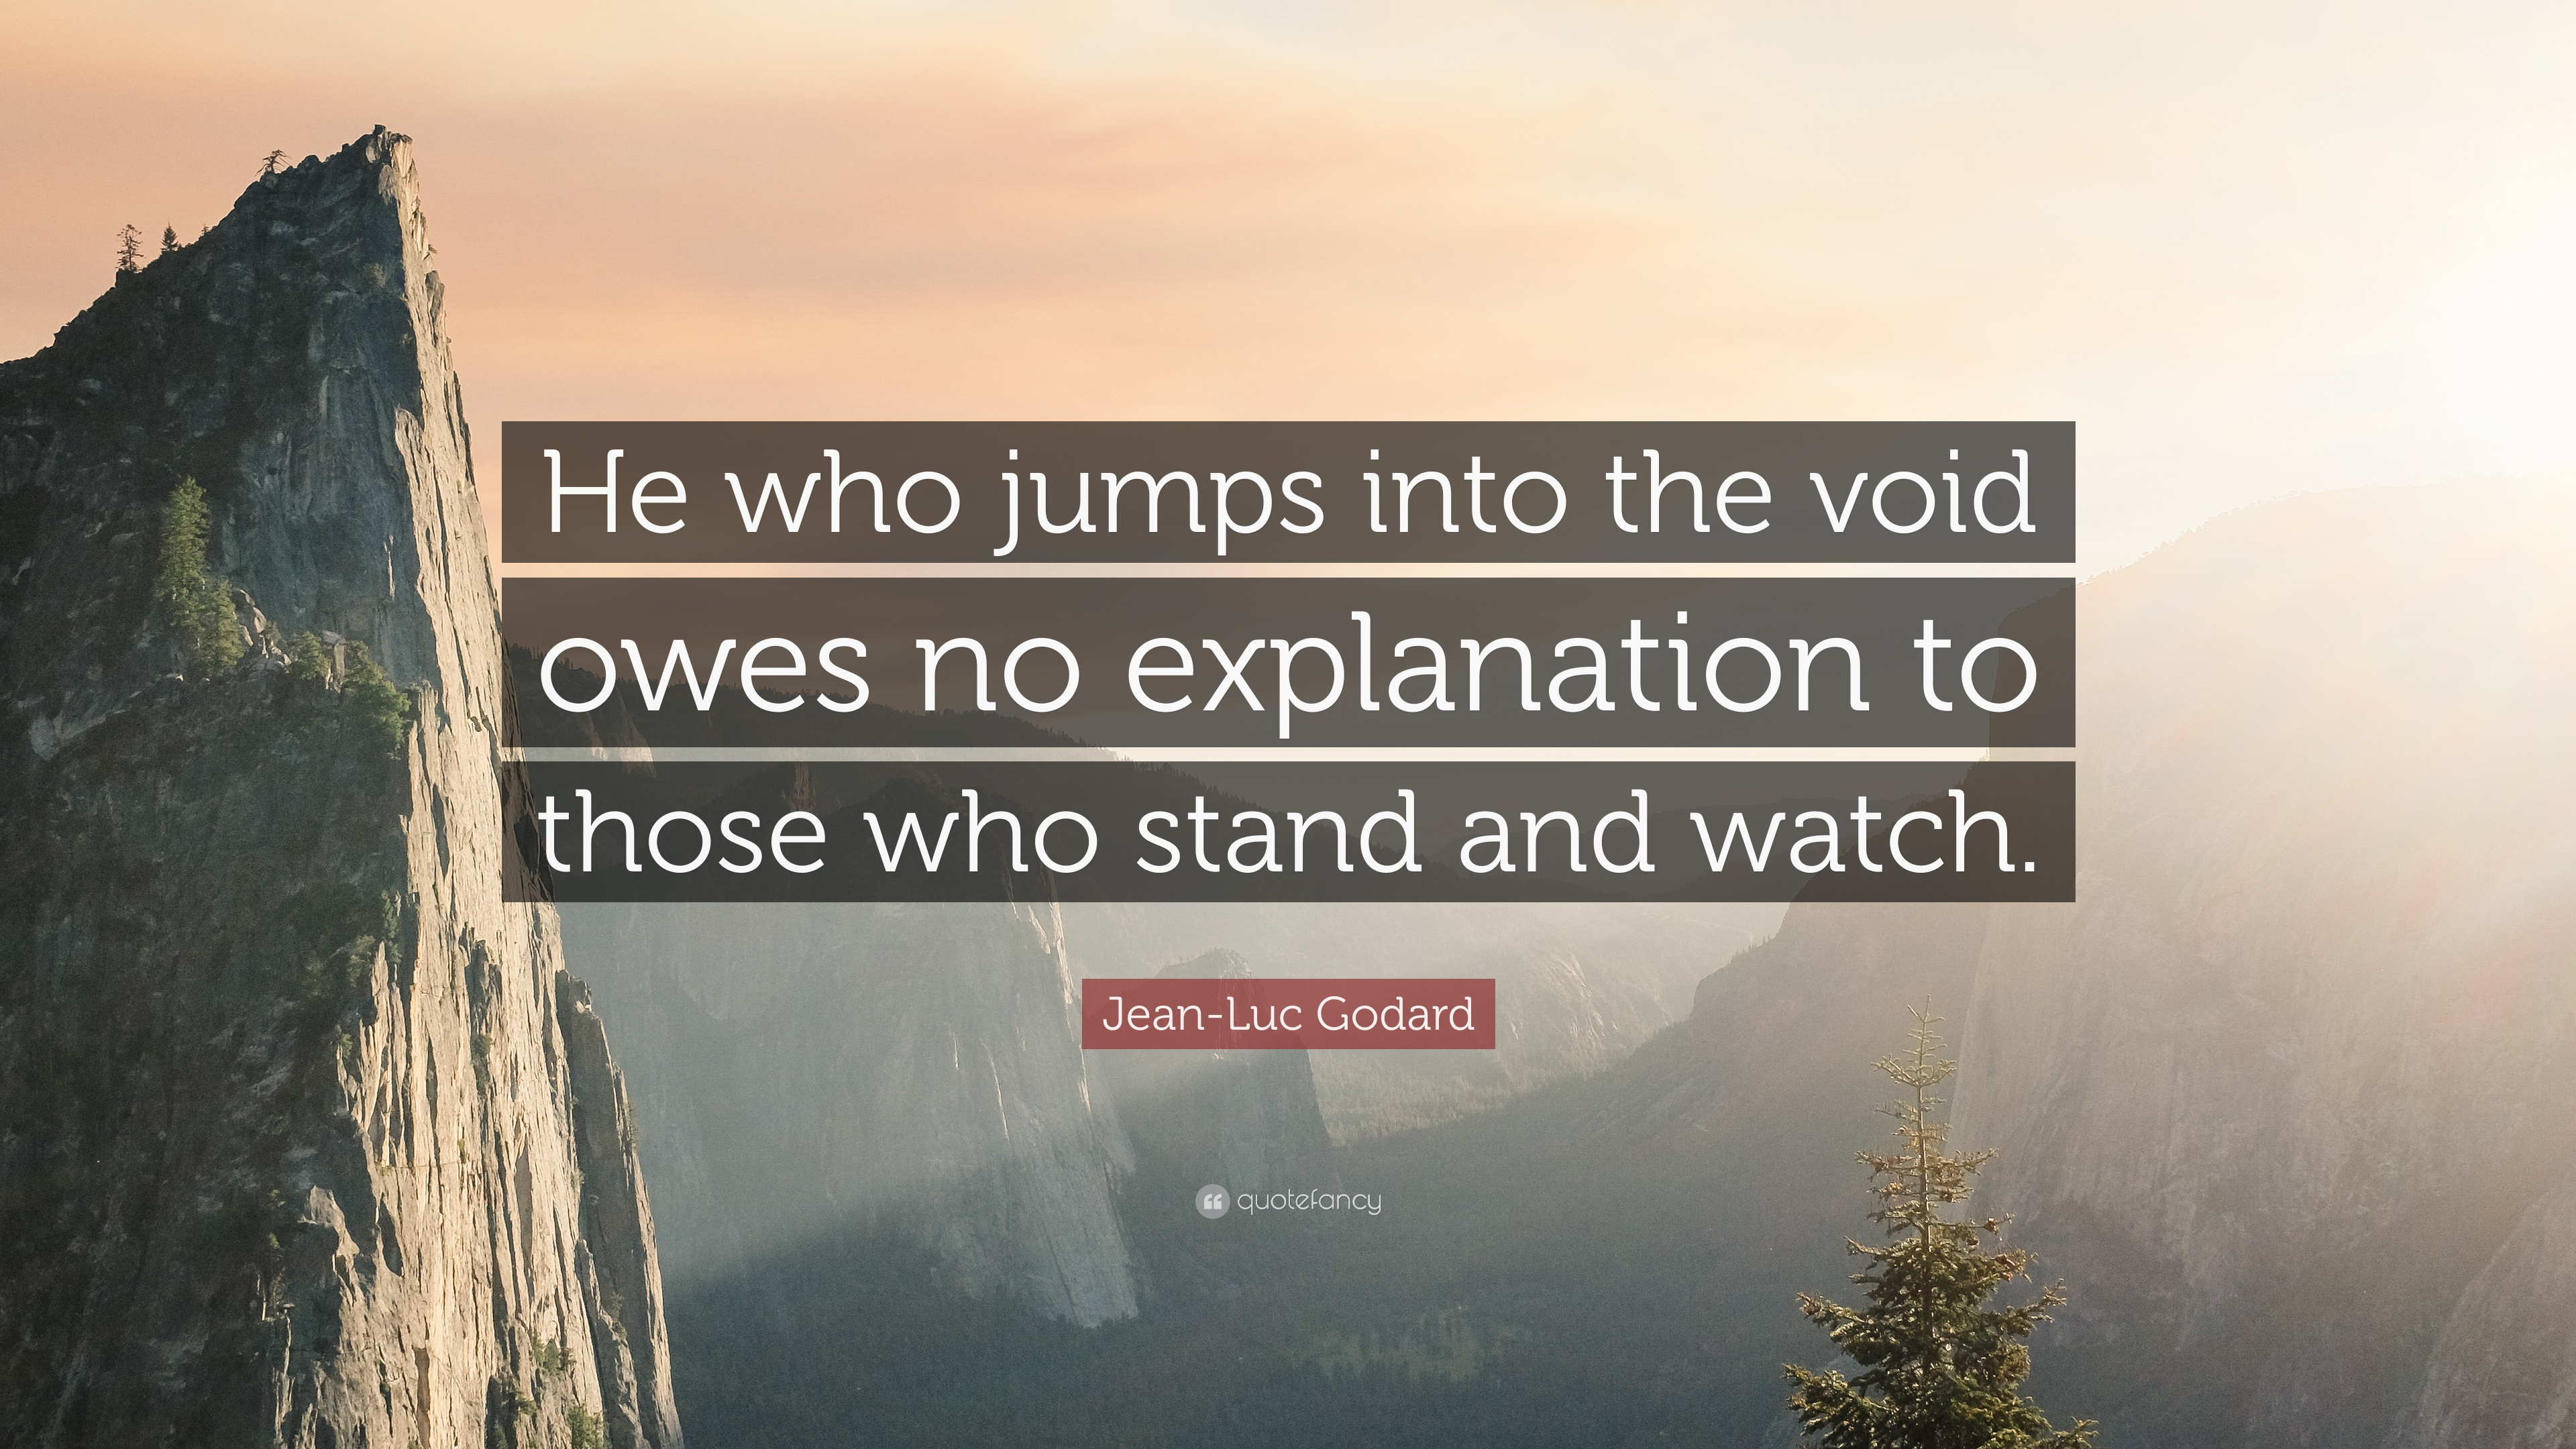 He who jumps into the void owes no explanation to those who stand and watch. -Jean-Luc Godard [3840*2160]